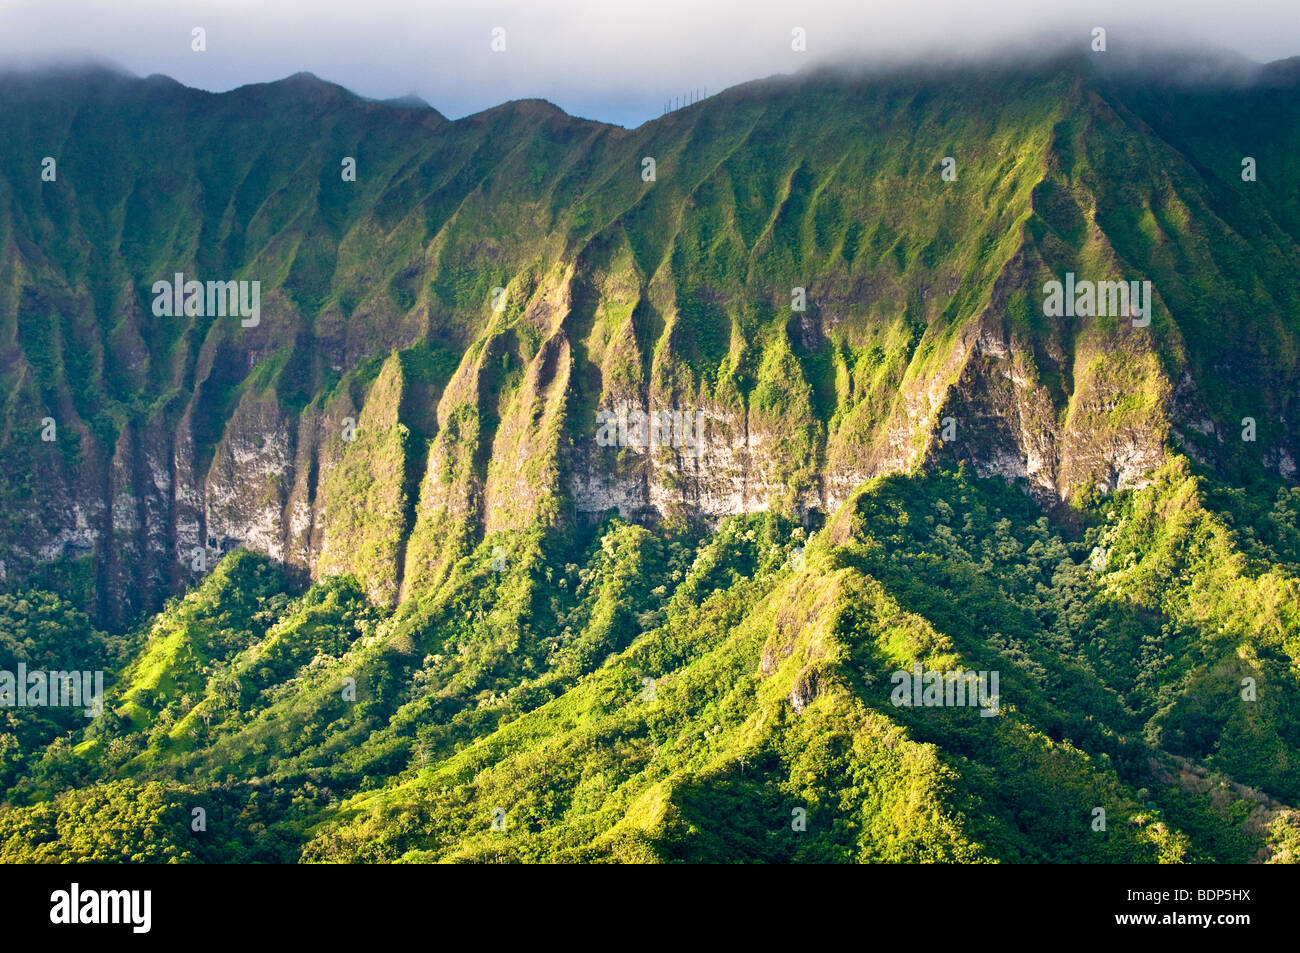 The cliffs of the koolau mountains on the windward side of for The windward